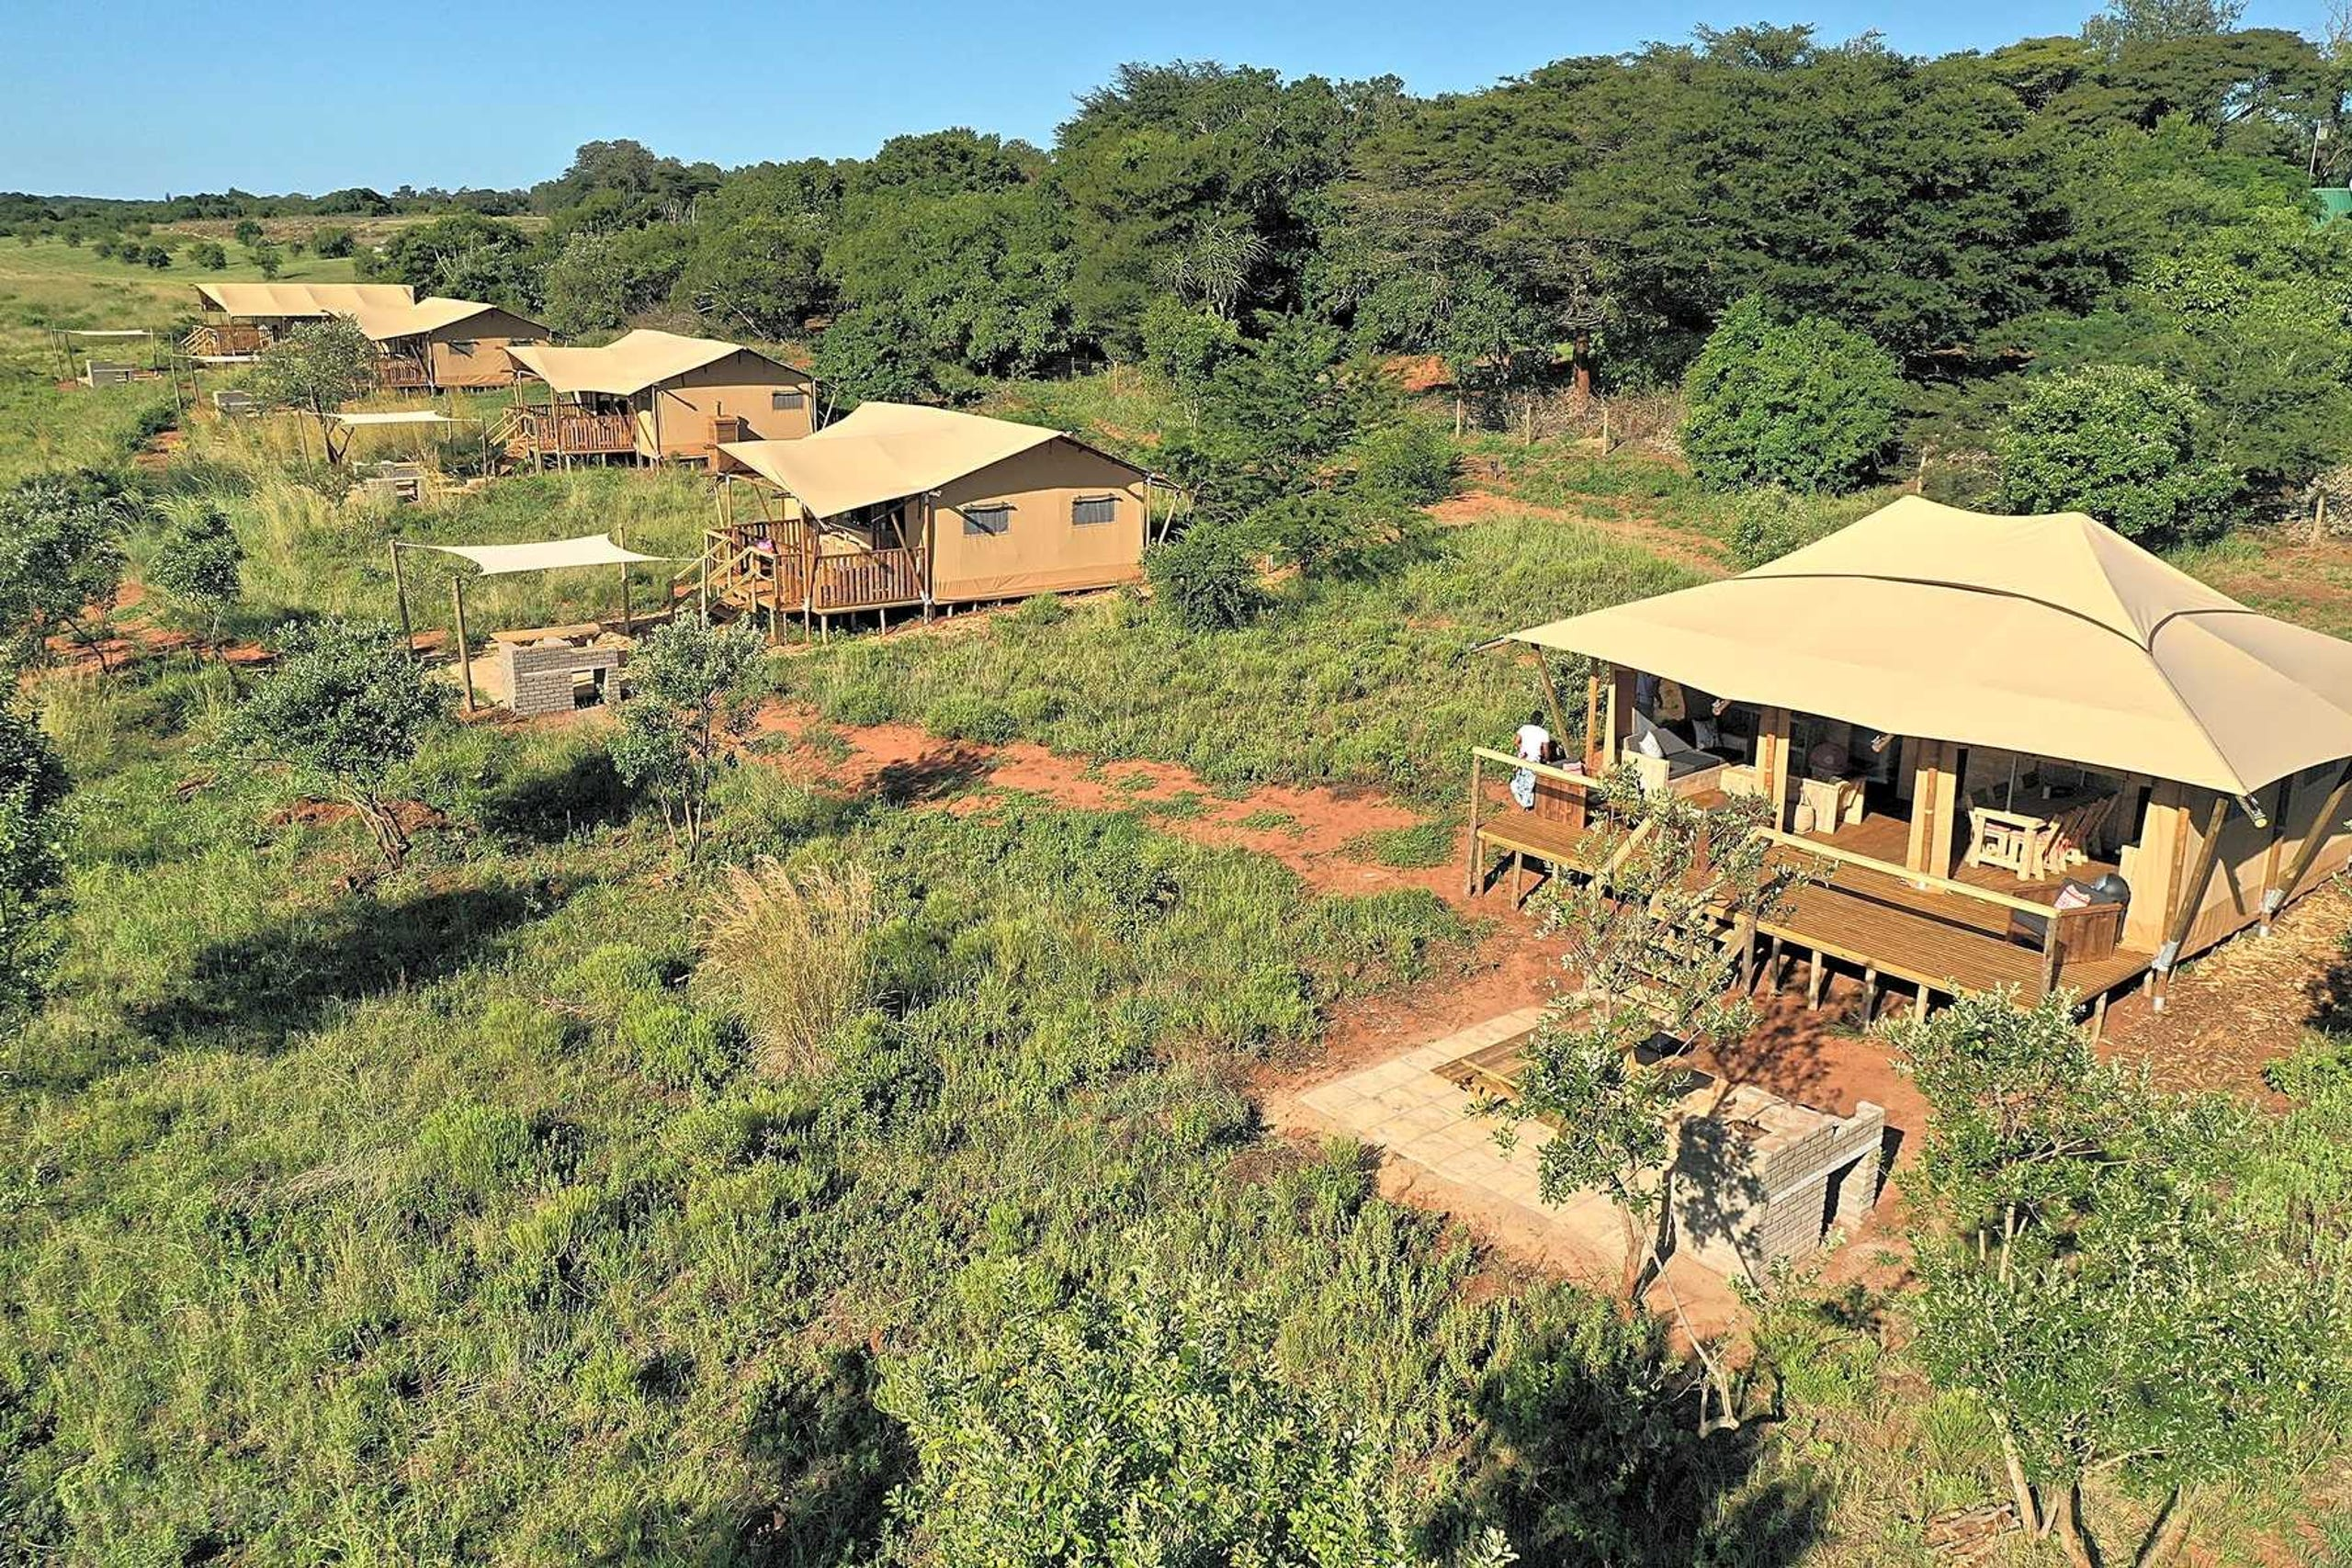 <strong>4. South Africa, Hluhluwe Bush Camp:</strong> Seeing wild animals in Africa sounds like a once-in-a-lifetime opportunity. Visitors here can do so while camping or glamping in one of the many tents at Bush Camp. A 25-minute drive away will lead to Hluhluwe-Imfolozi Park, the oldest proclaimed nature reserve in Africa. The park is known for its rhino conservation efforts. If you want to take a break from the heat, spend the day snorkeling the coral reefs at the Sodwana Bay in Isimangaliso Wetland Park.<br /> <strong>Price:</strong> Starting at $20.89 a night<br /> <strong>Park type:</strong> Tent, camper, RV, tipi, yurt